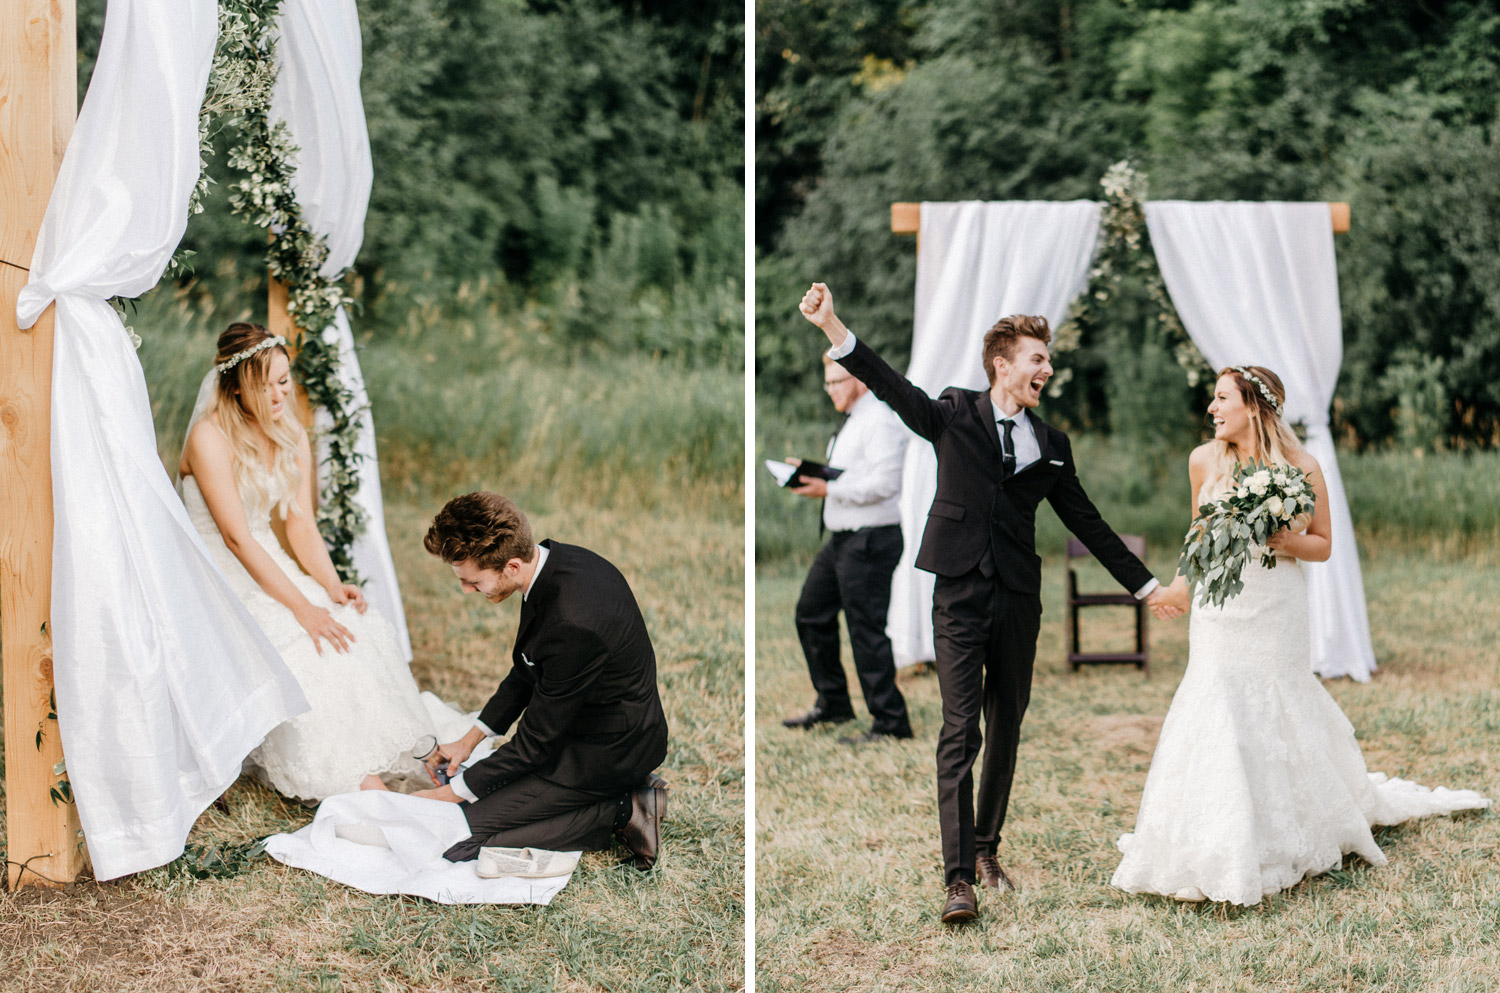 Outdoor Backyard Wedding ceremony by geneoh photography